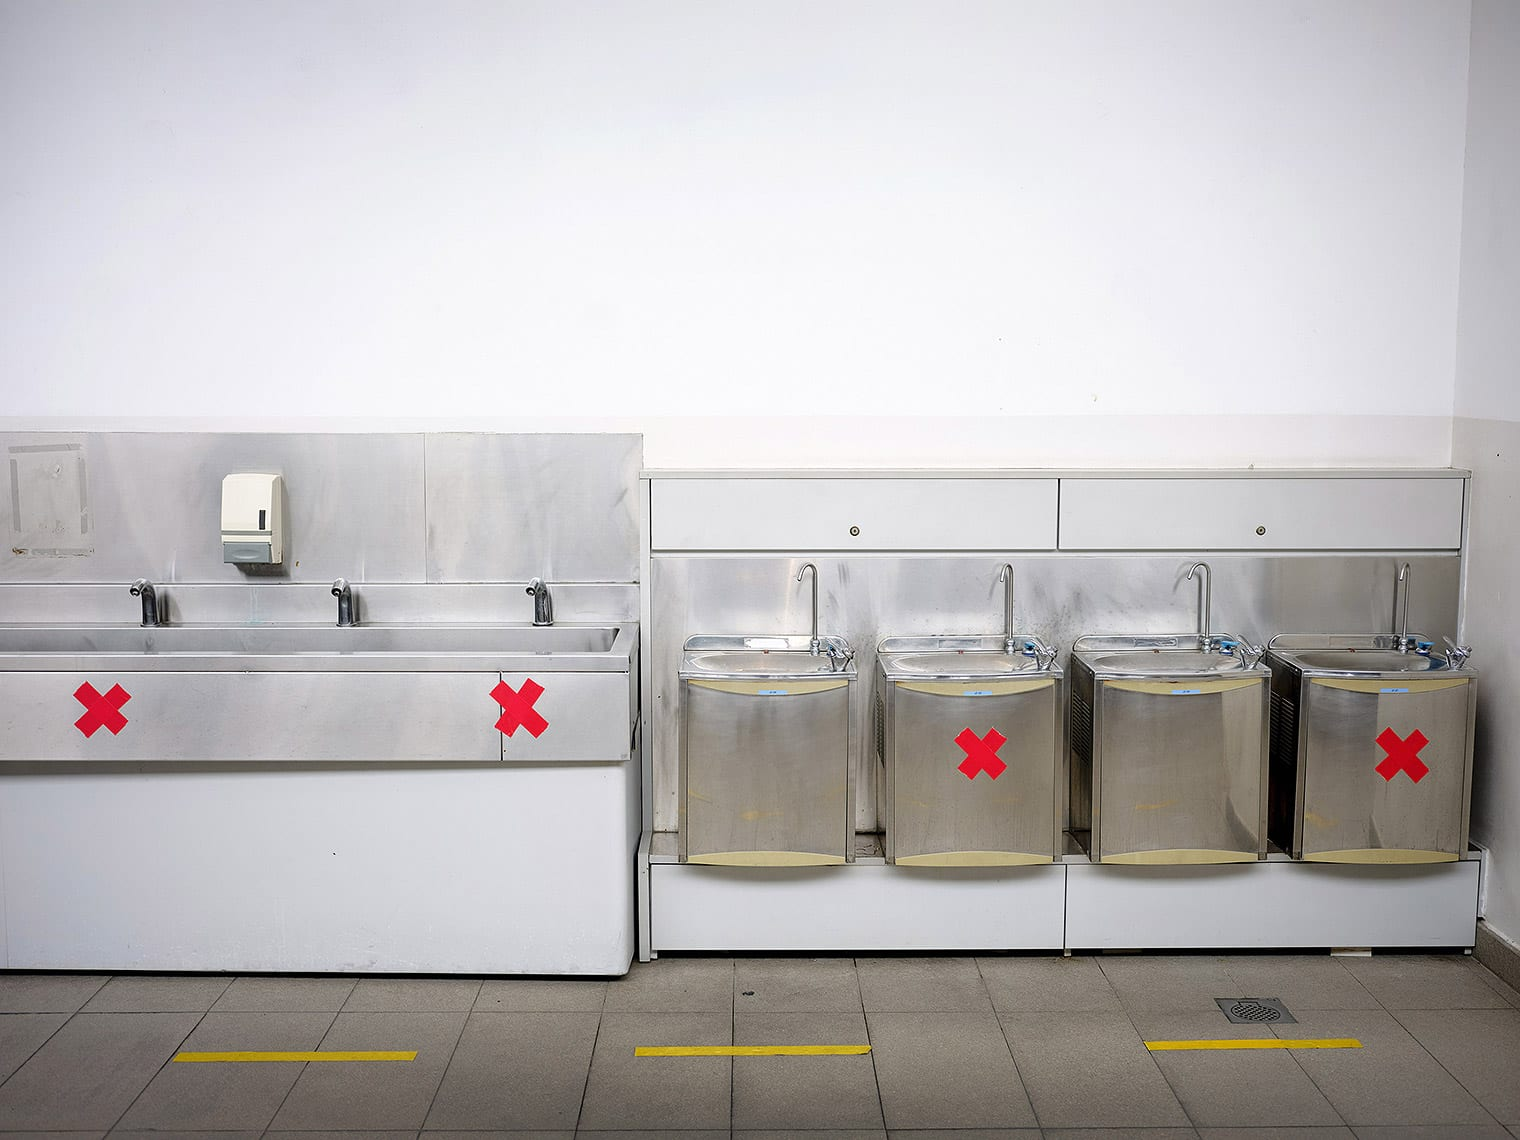 Seven water fountains lined up against the wall; every other foundatin is marked with a red X in tape